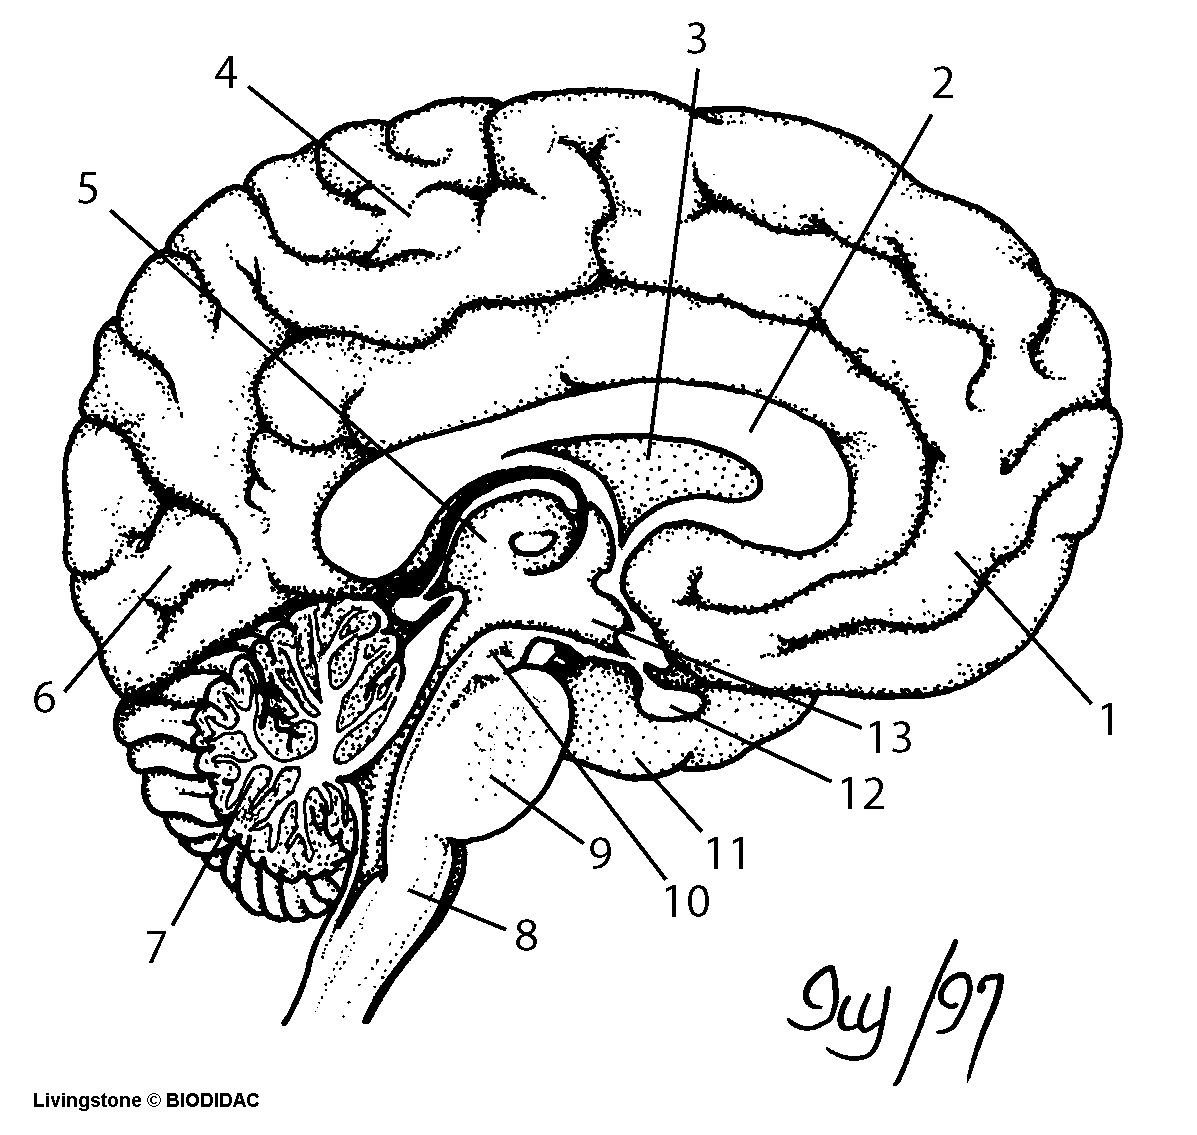 nervous system coloring page the nervous system coloring sheet coloring sheets system nervous page coloring